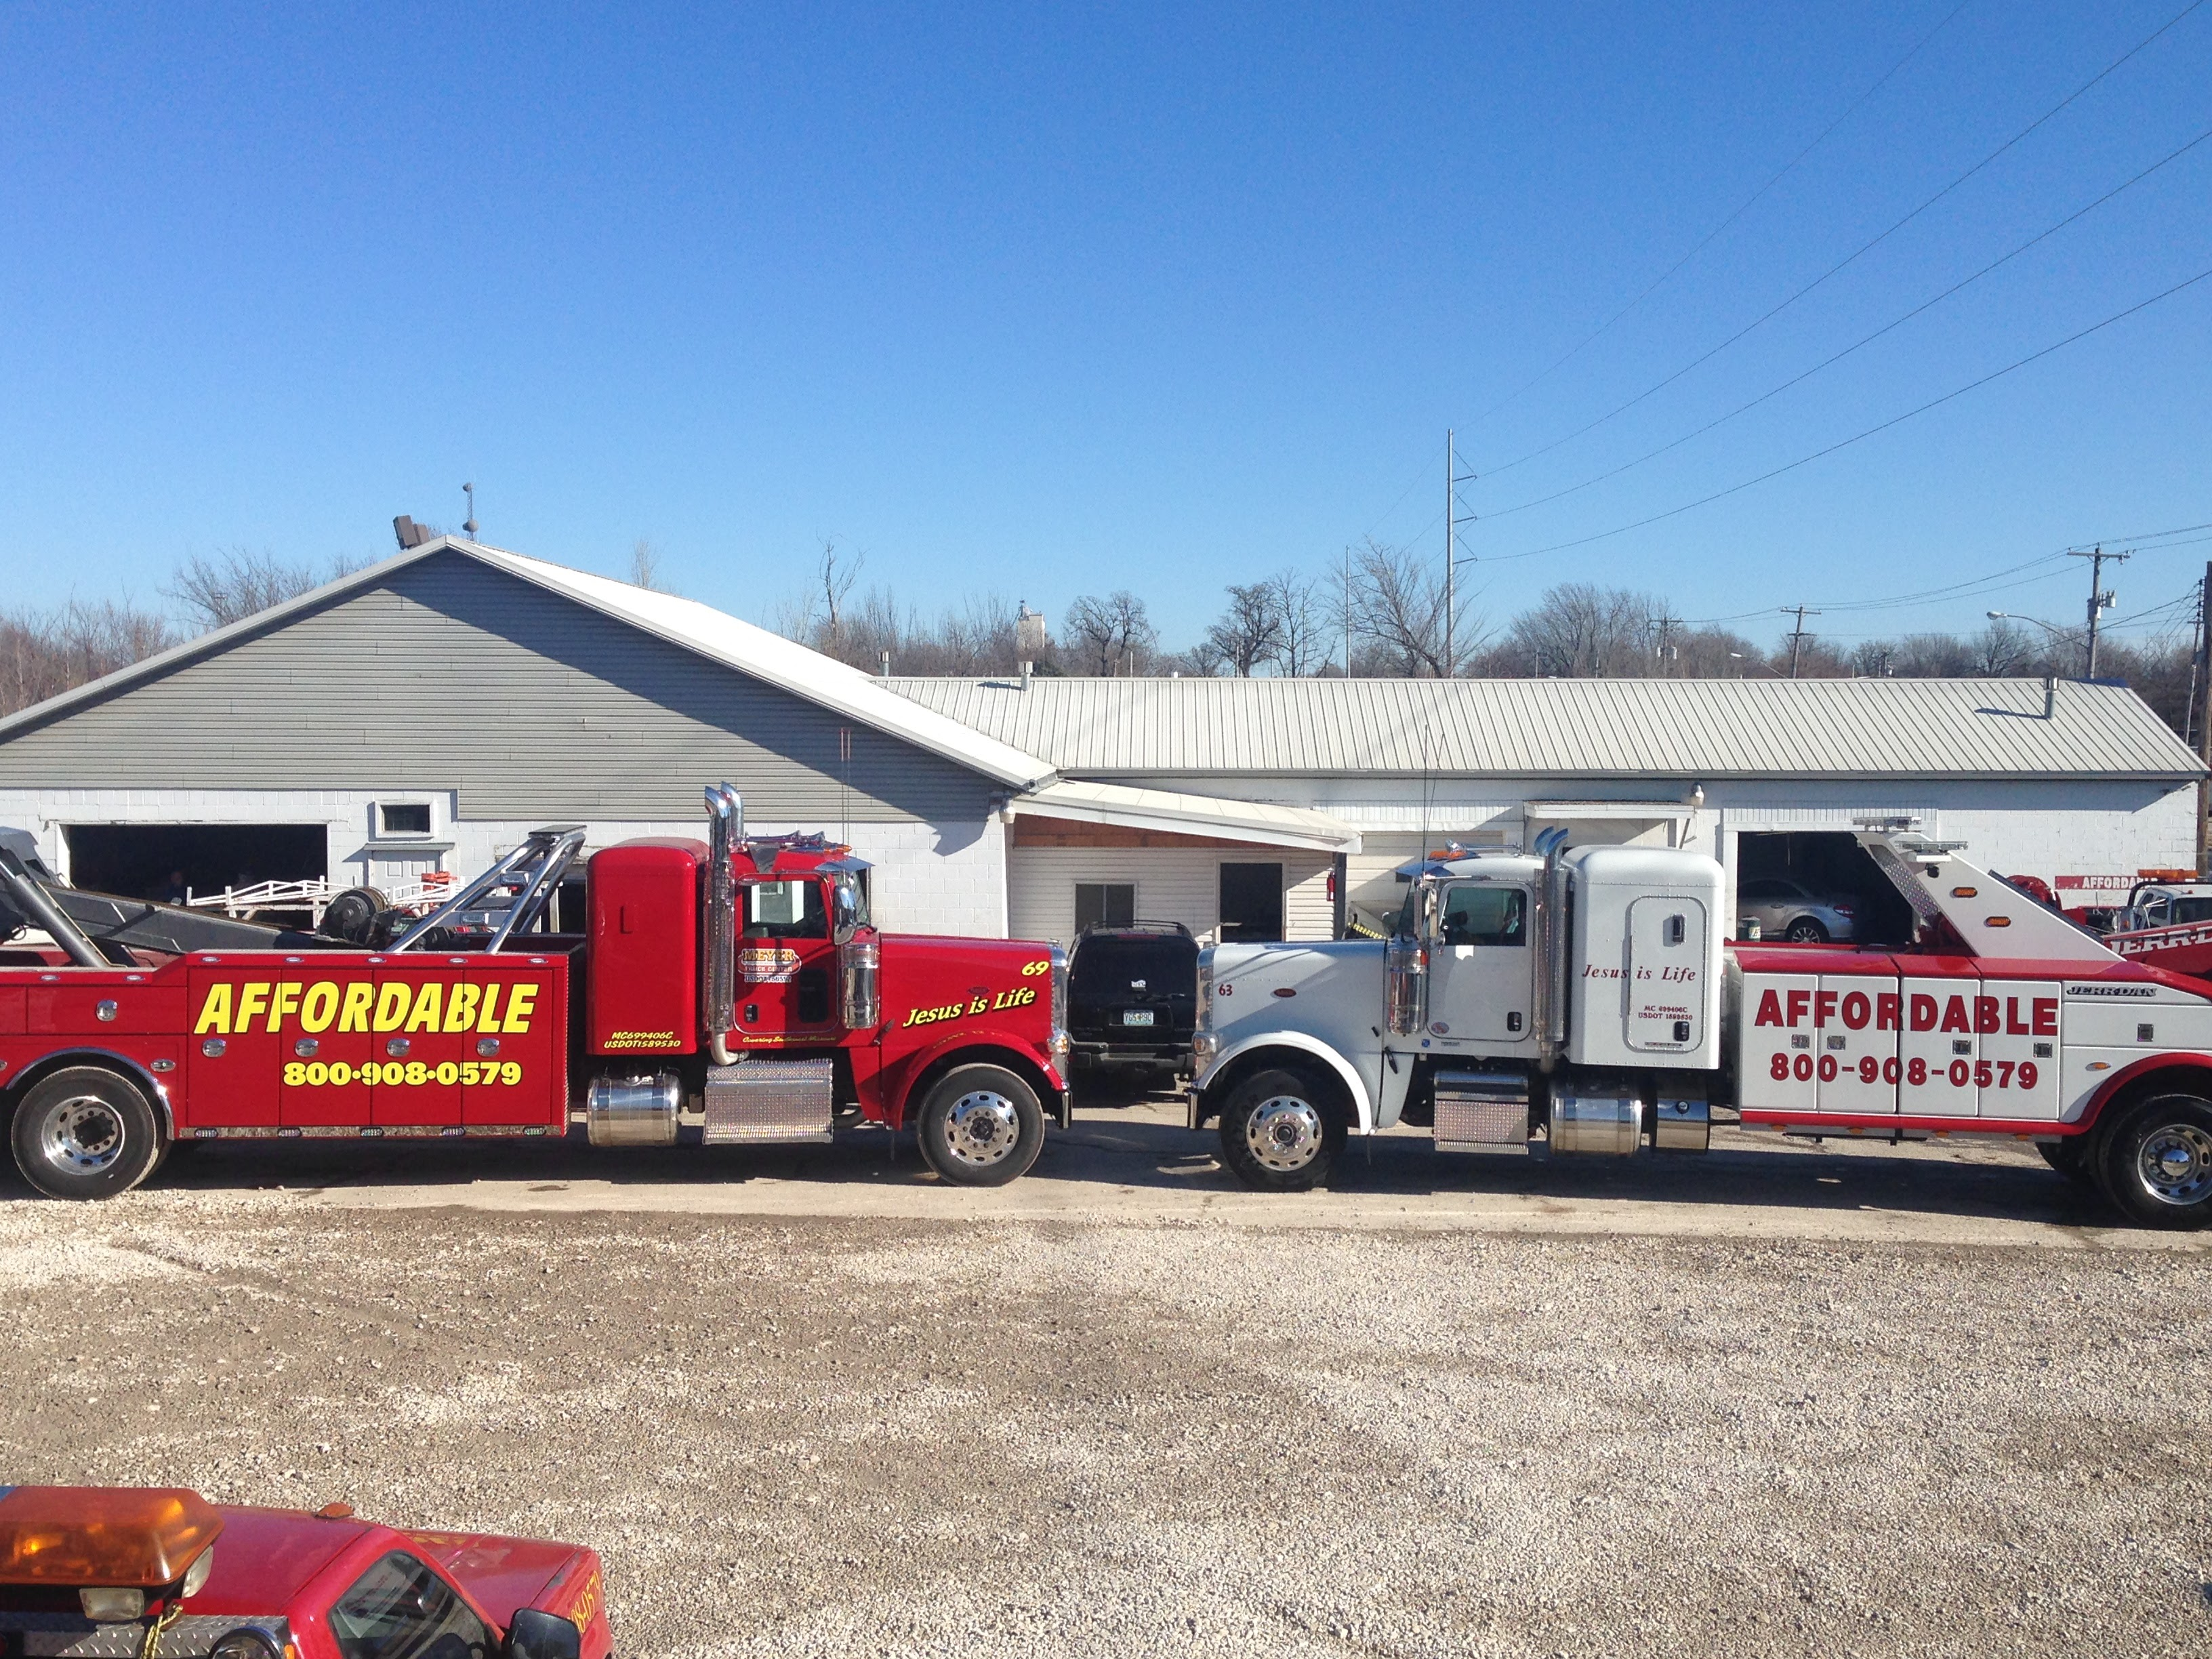 Affordable Towing image 6